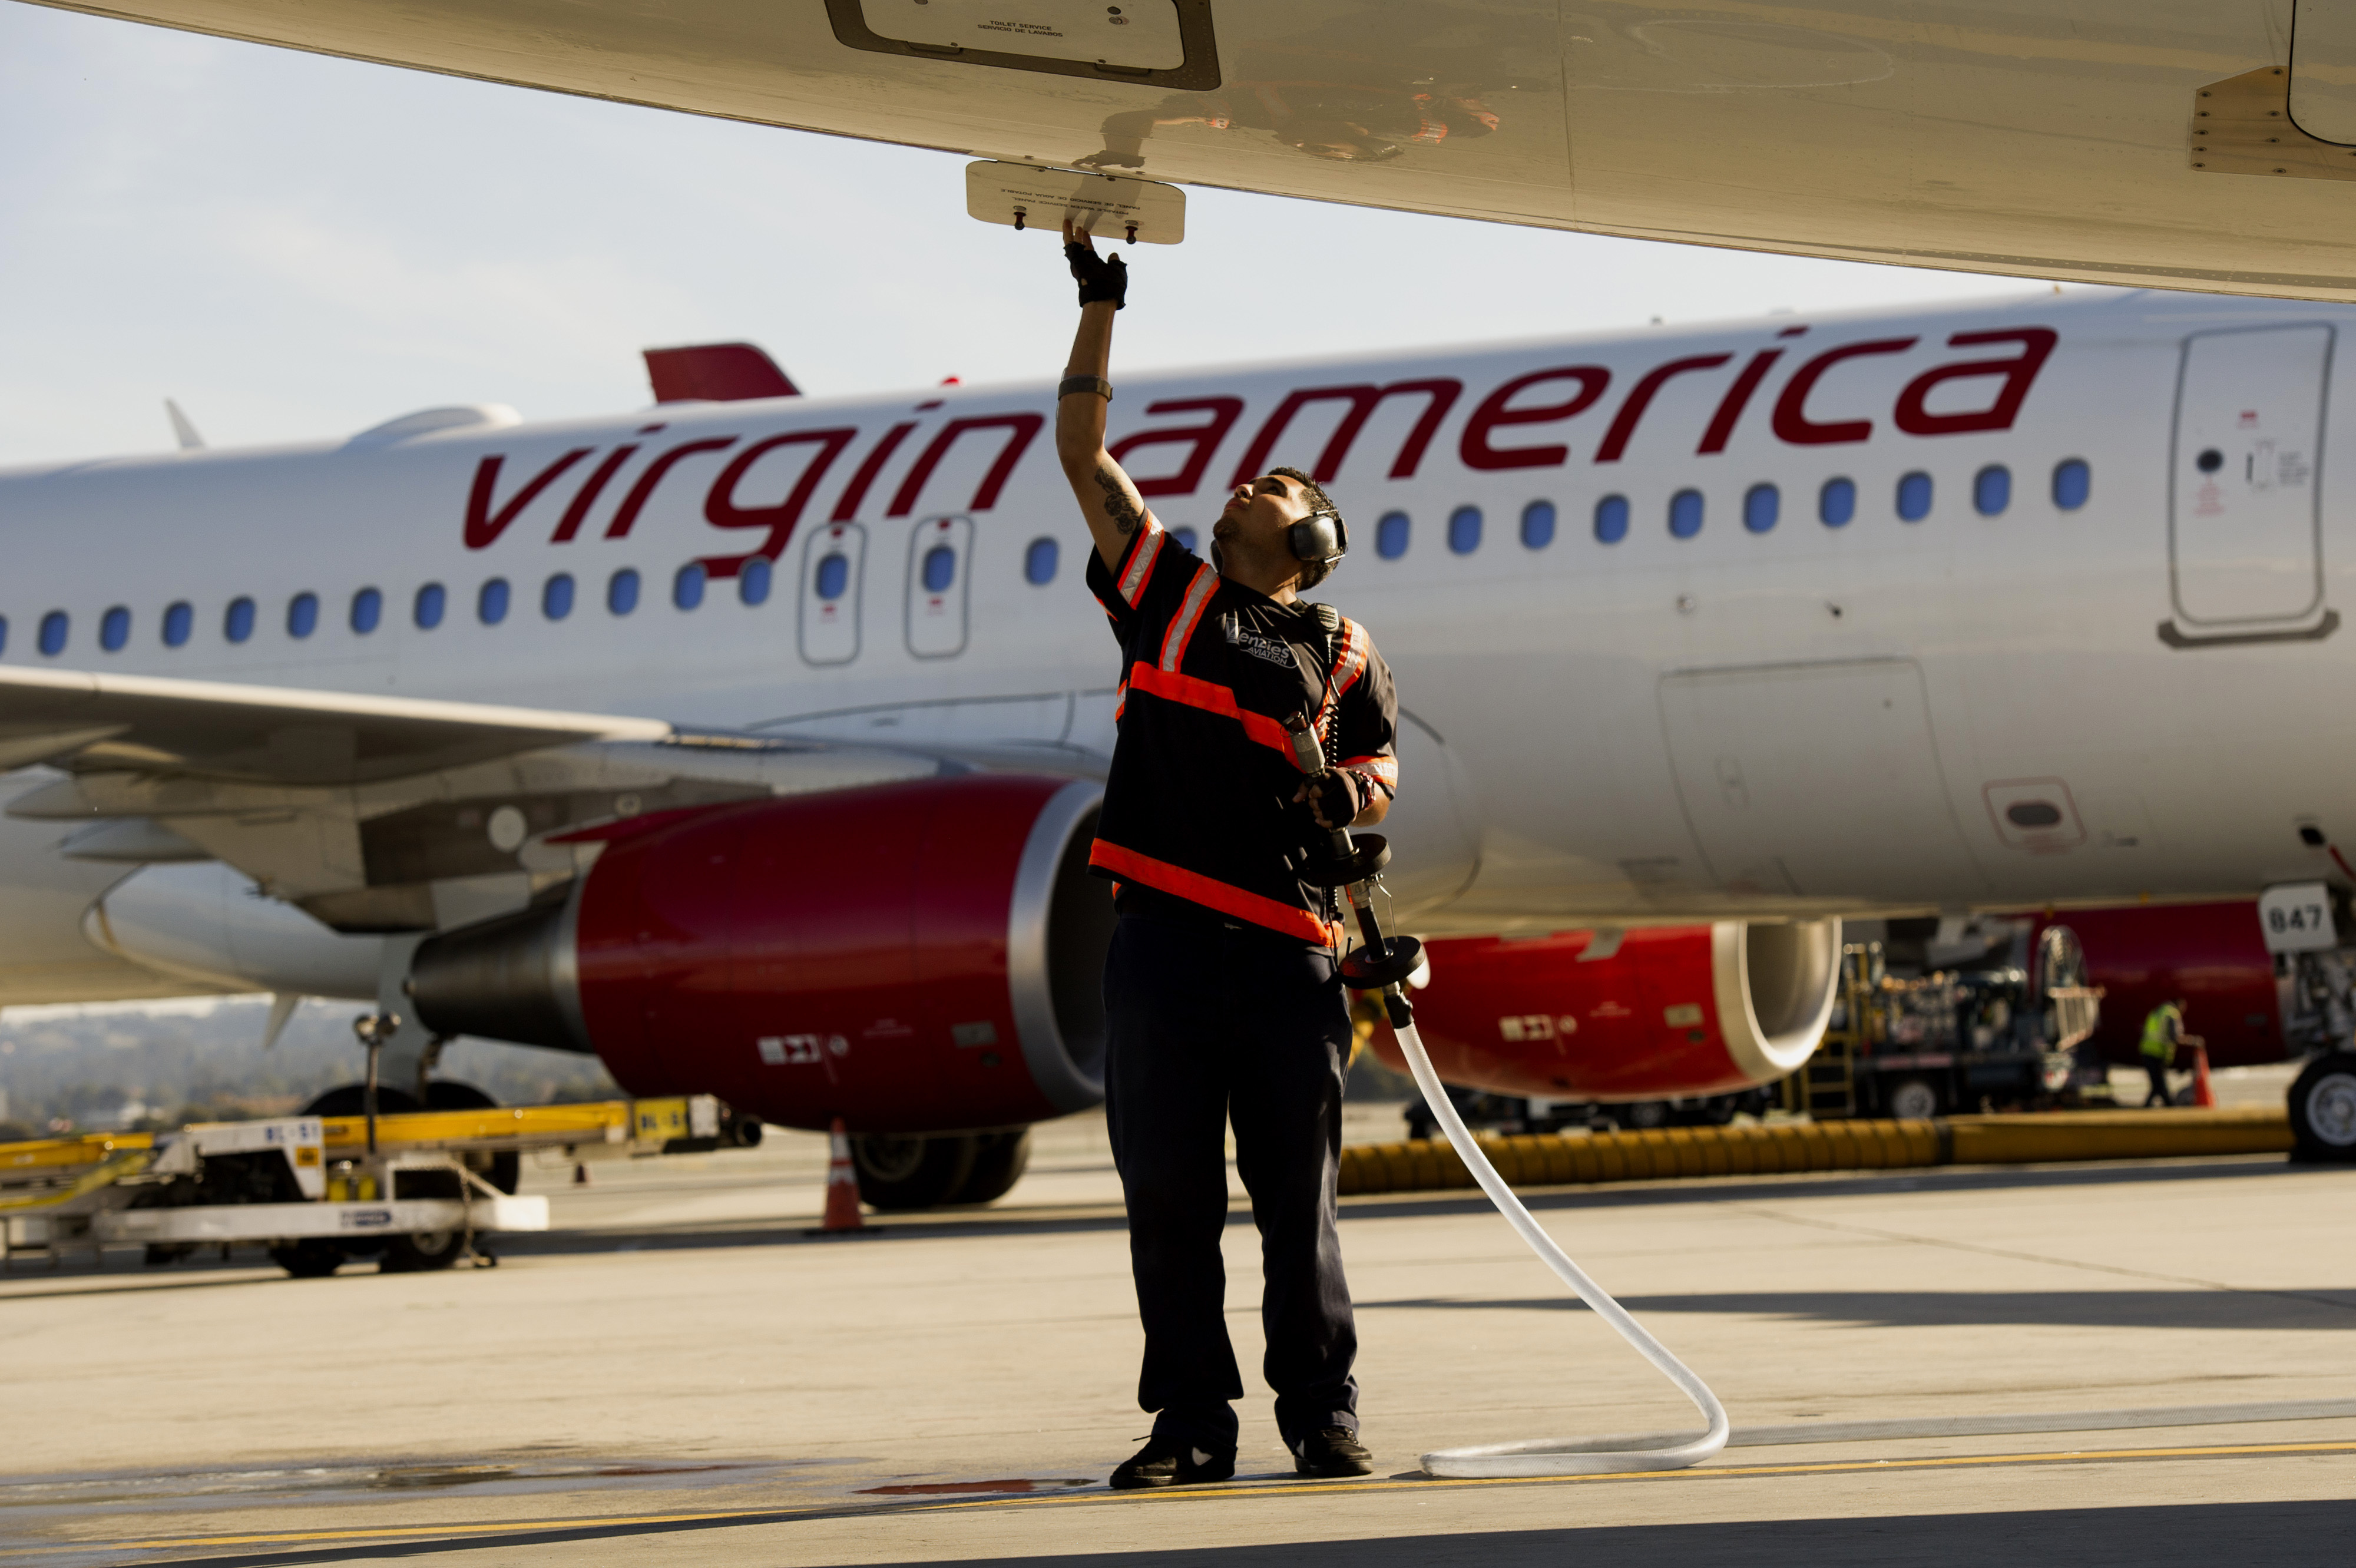 An employee prepares a Virgin America Inc. Airbus A320 plane for take off at San Francisco International Airport (SFO) in San Francisco, California, U.S., on Thursday, Nov. 6, 2014.